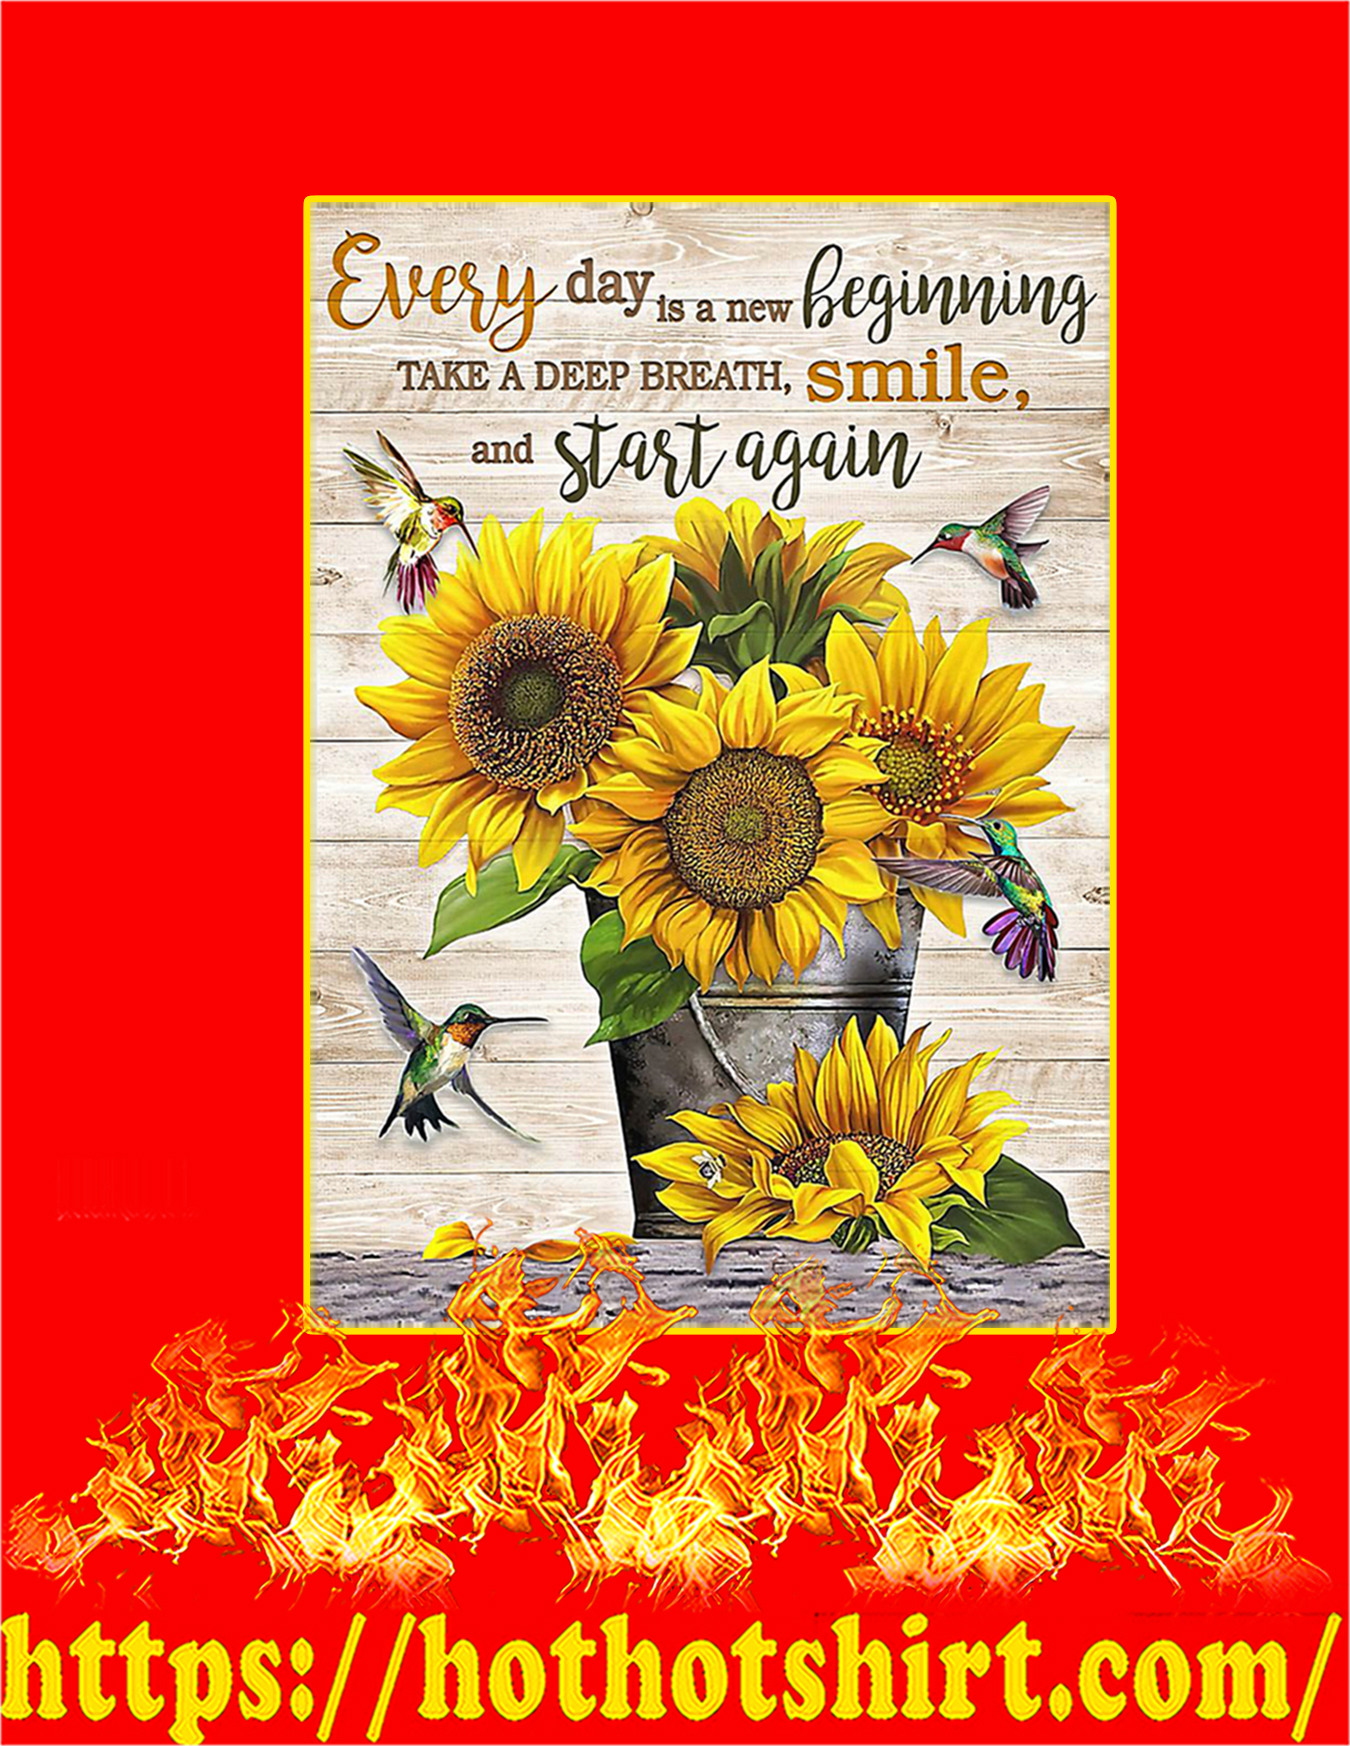 Sunflower Every day is a new beginning poster - A2